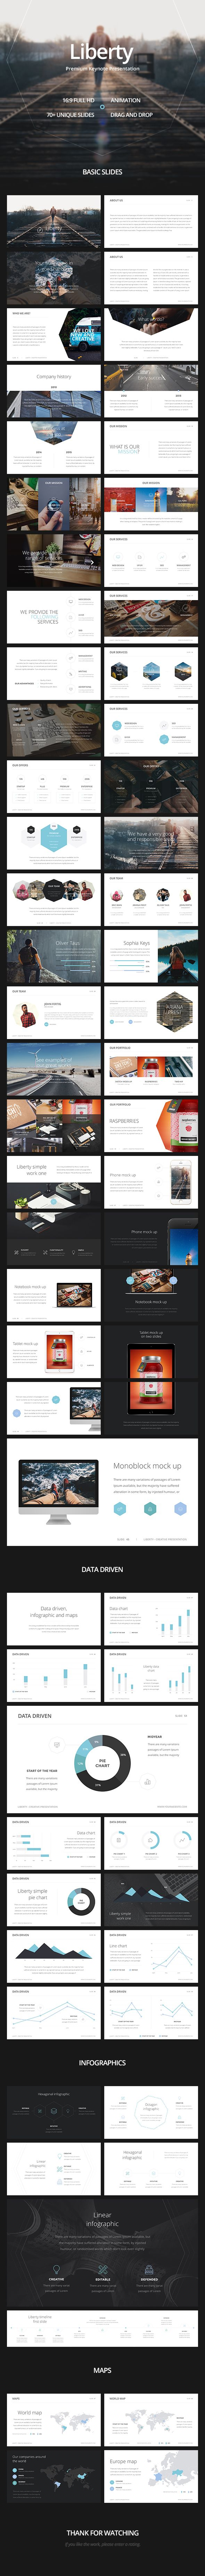 Liberty Keynote Presentation Template. Download here: http ...